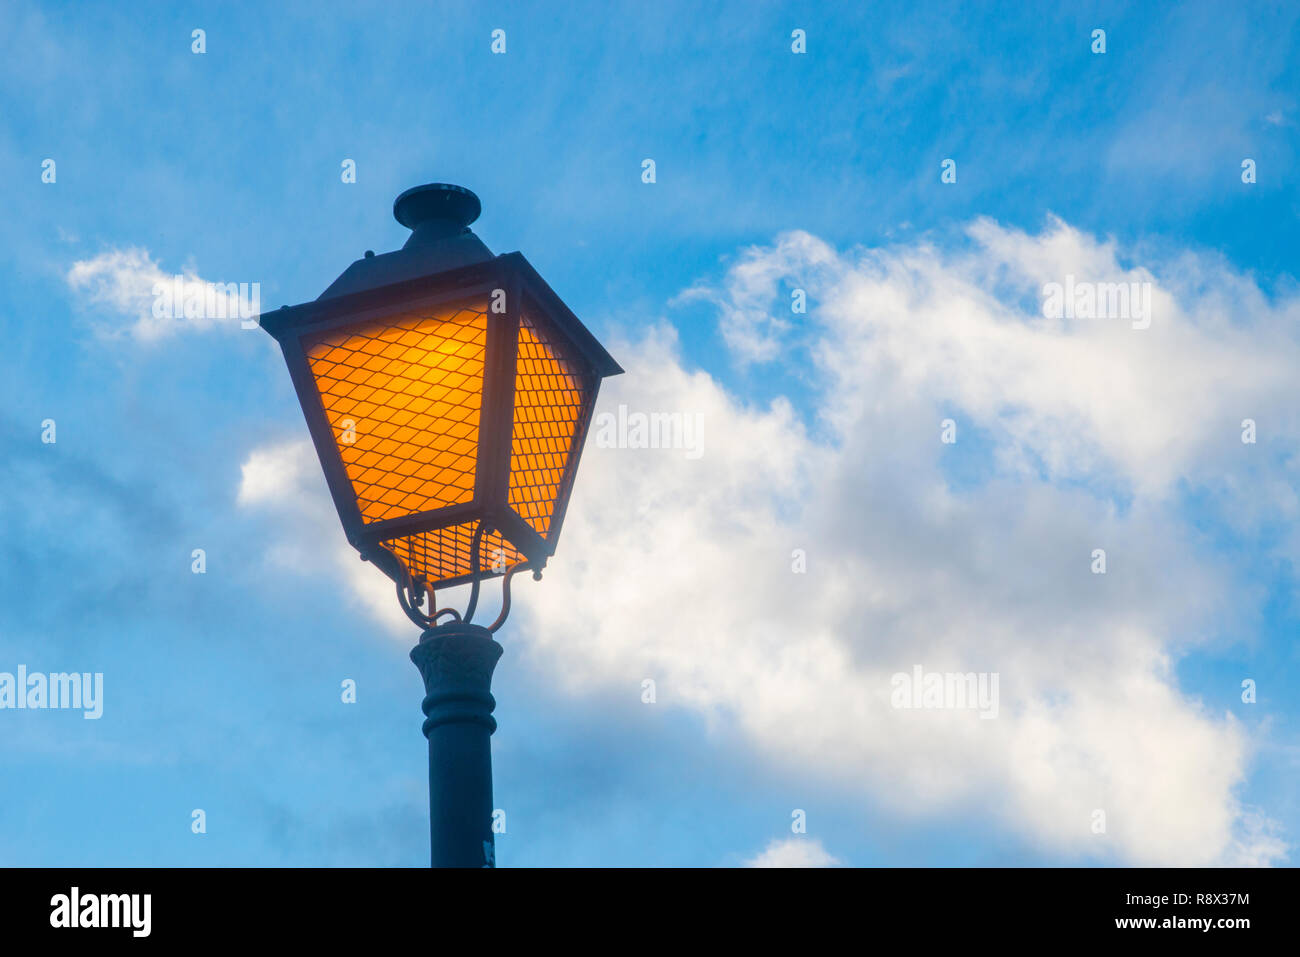 Lit up street light against blue sky. Stock Photo